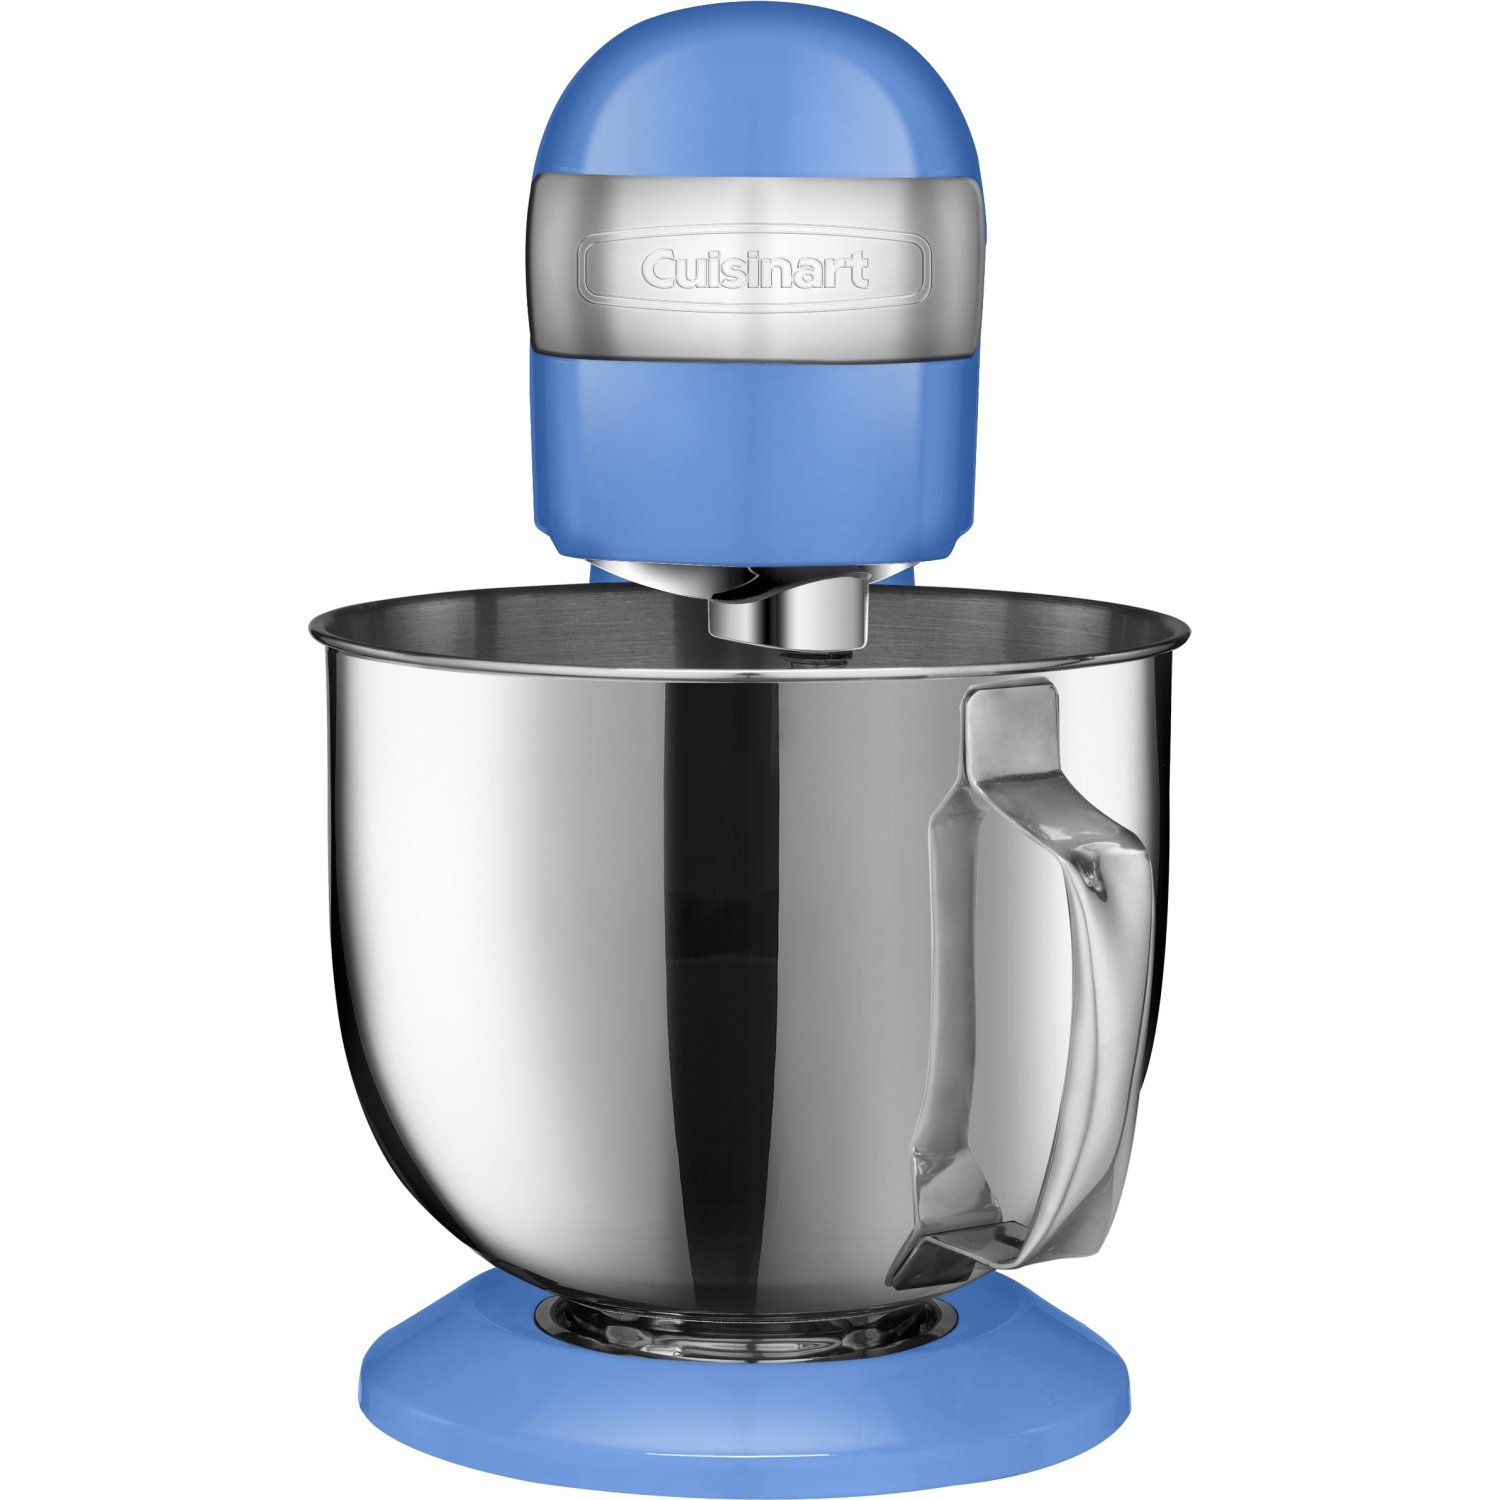 Periwinkle bluee Cuisinart SM-50 5.5 - Quart Stand Mixer, White